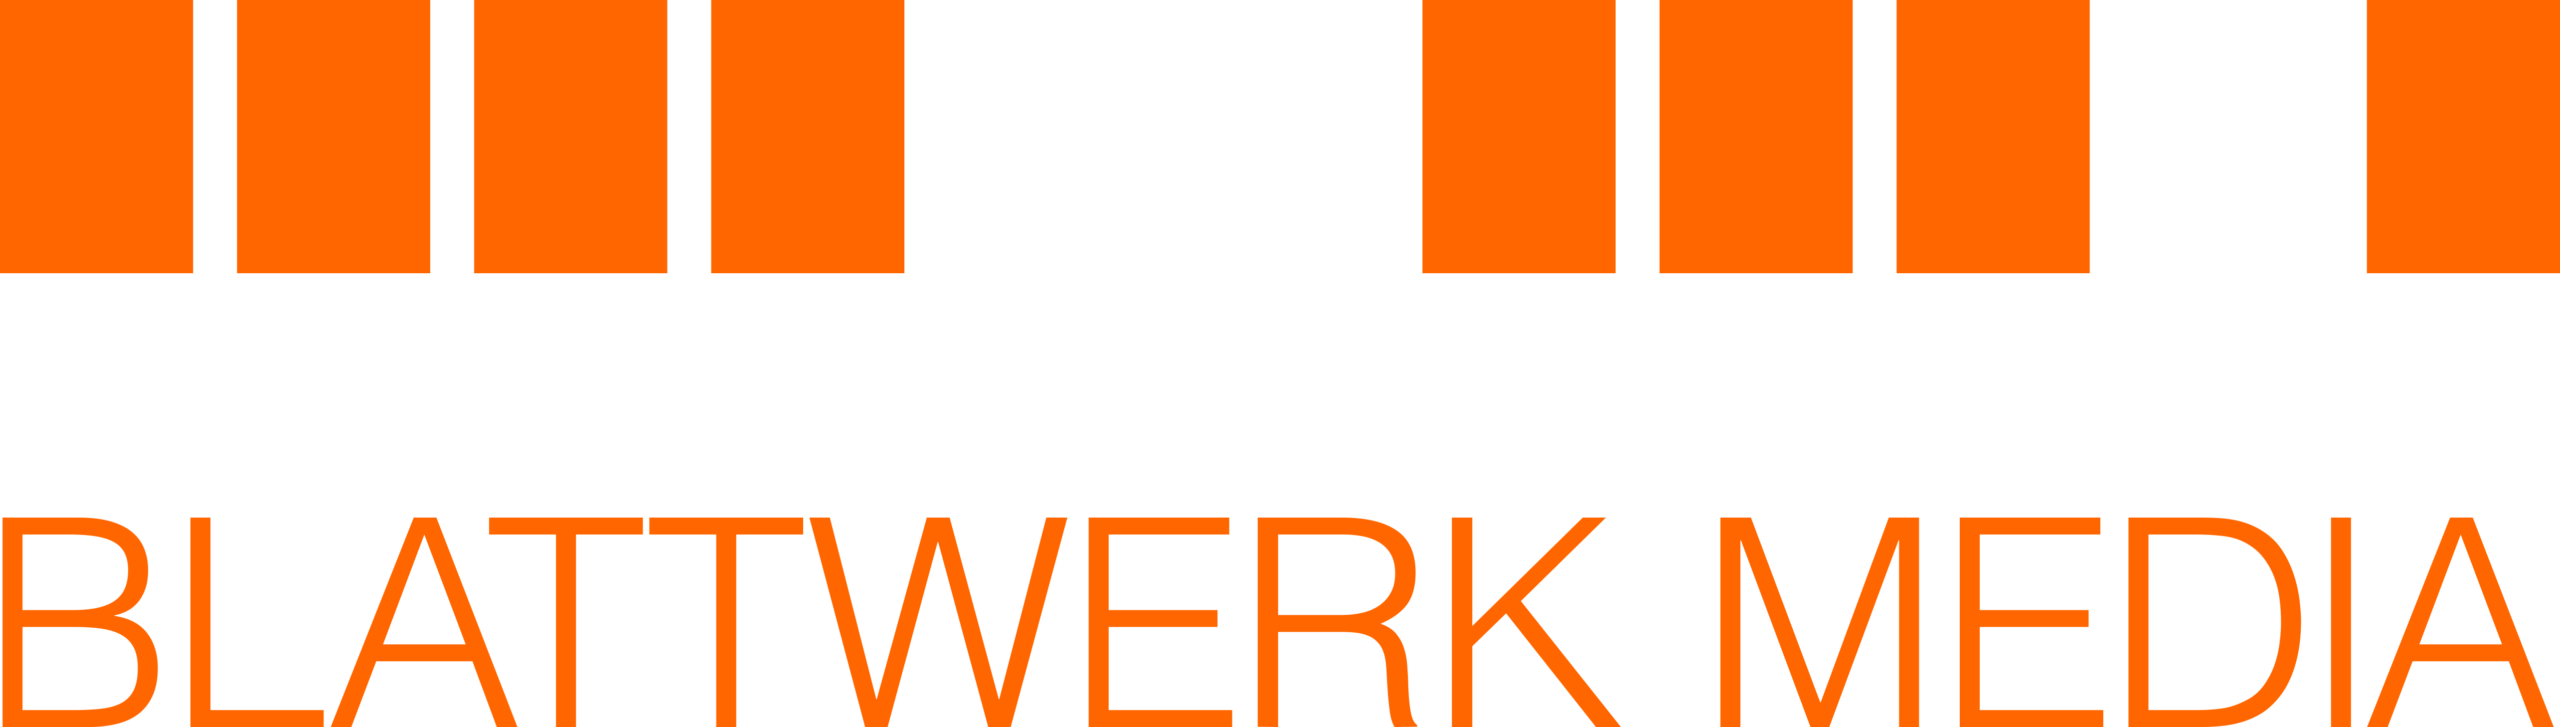 Blattwerk Logo orange